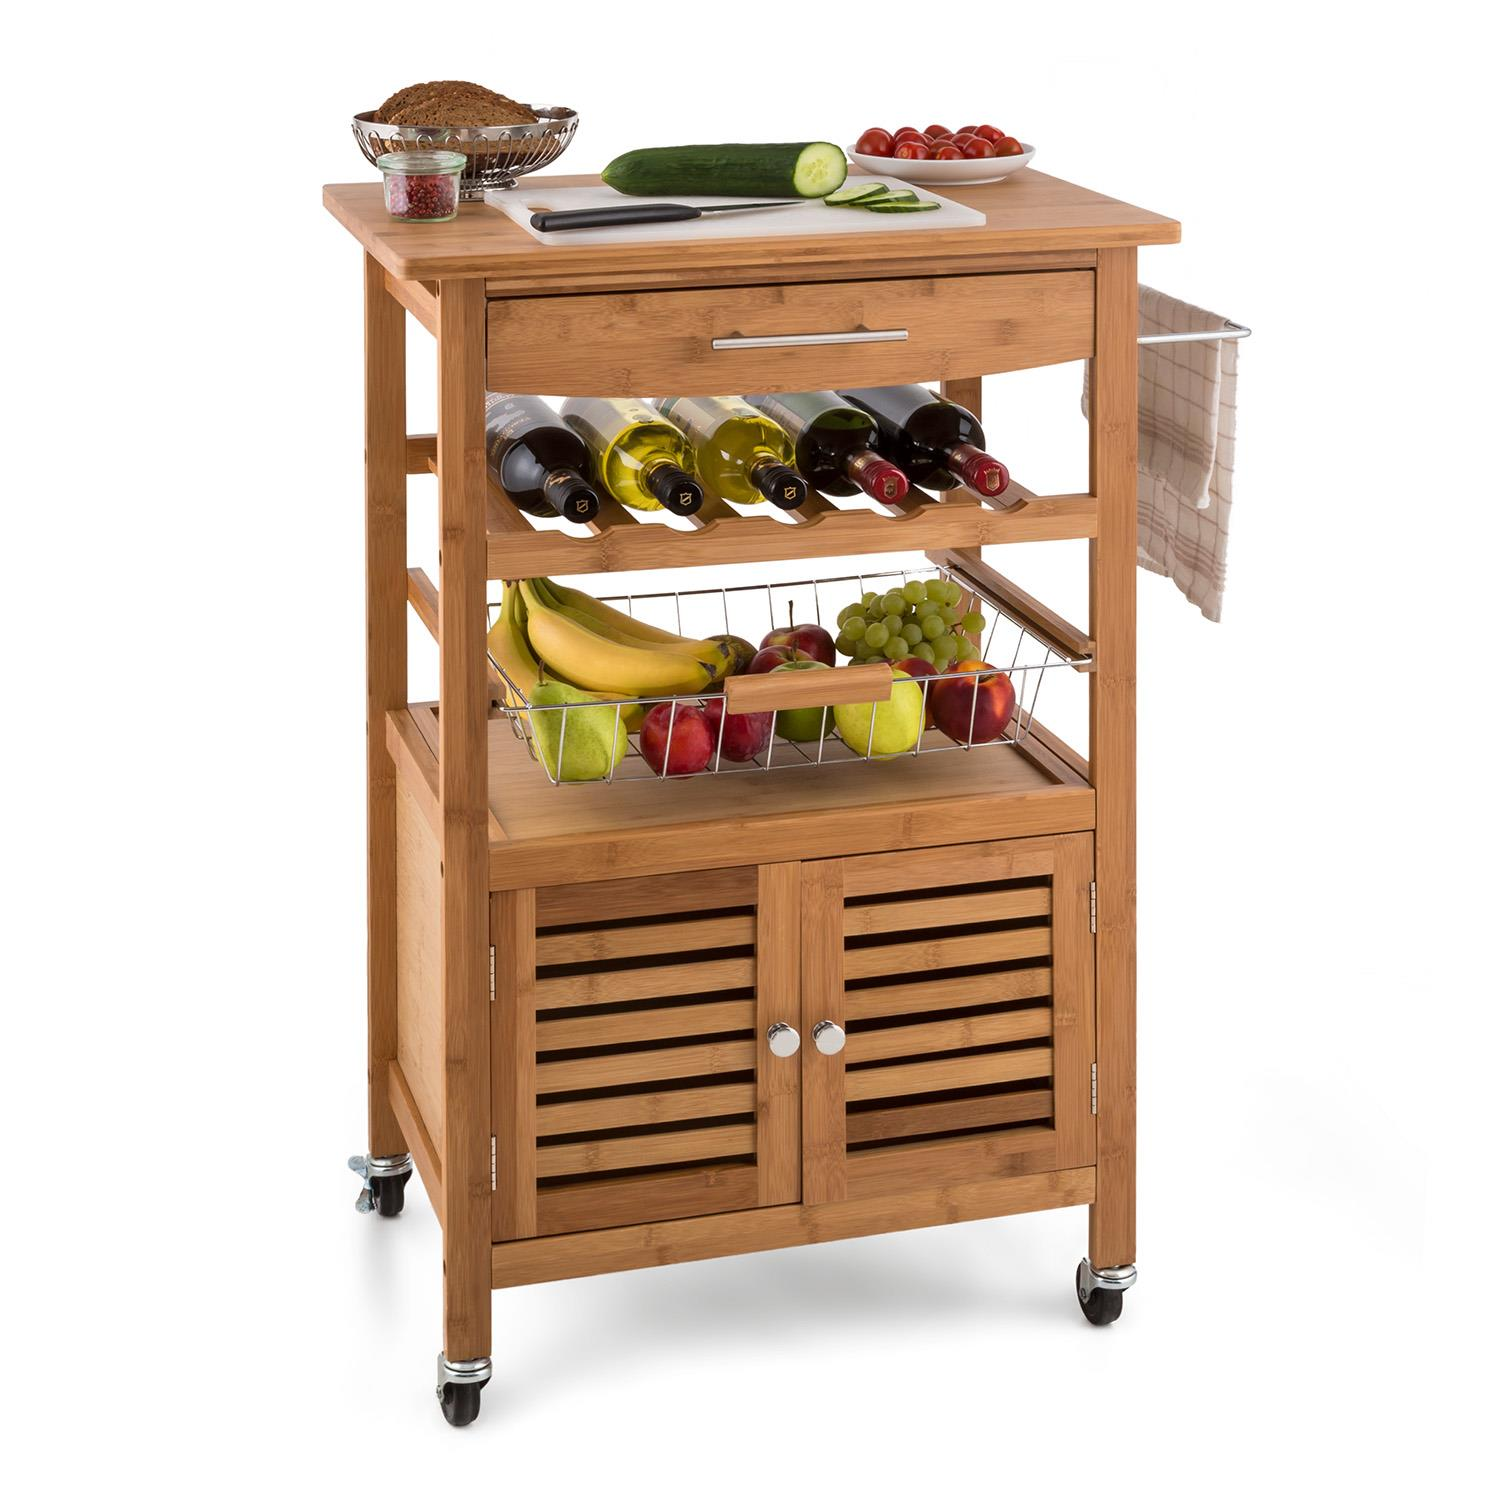 Kitchen Carts Trolley Service 3 Levels Bamboo Granite Storage Drawer Wheels Ebay